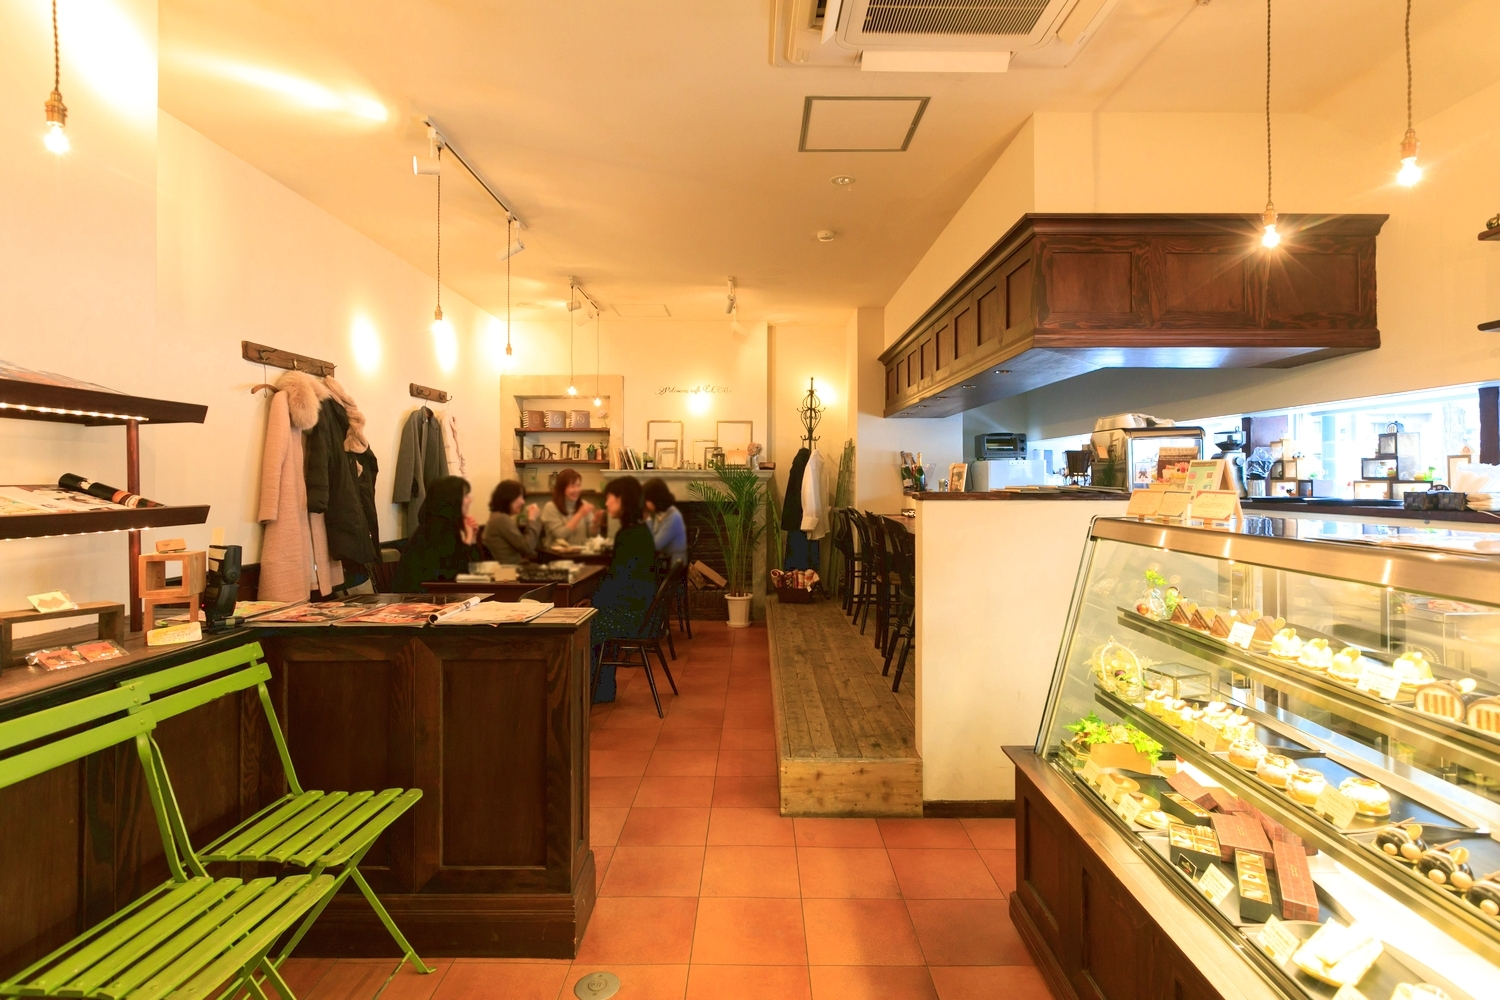 Patisserie cafe L'Or(パティスリーカフェロール)_2